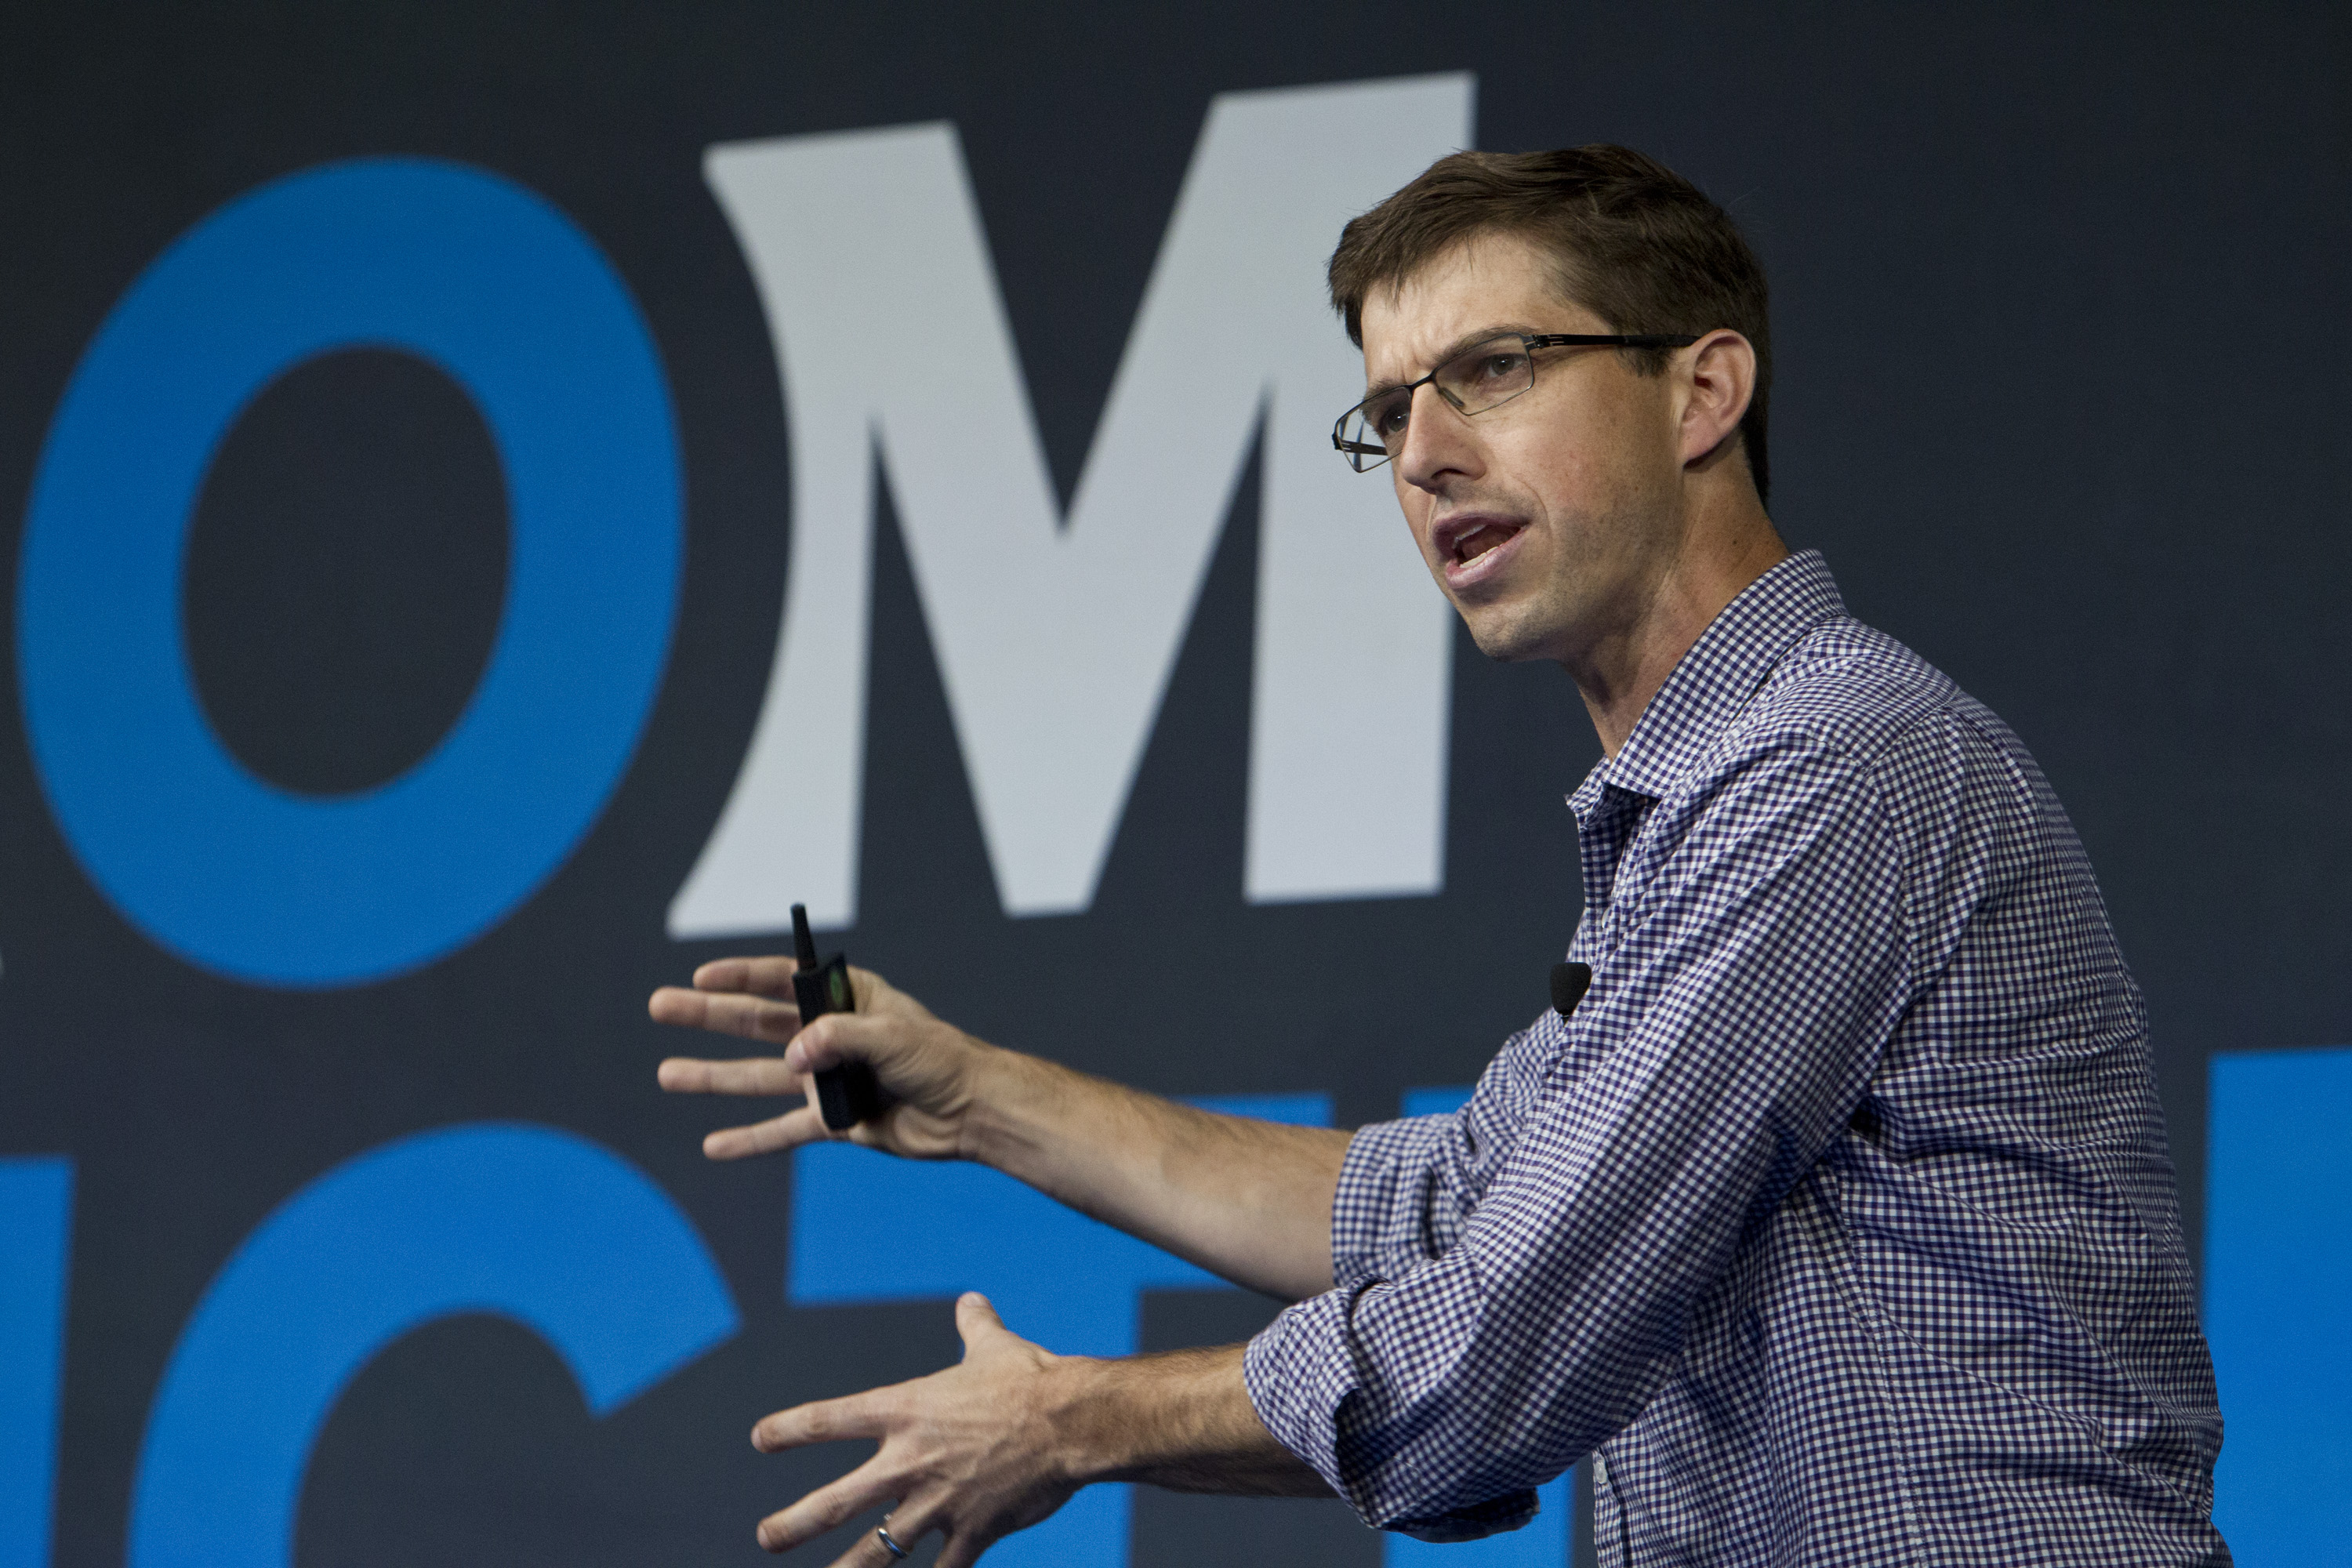 Bryan Cantrill at Structure 2014. Credit: Jakub Mosur